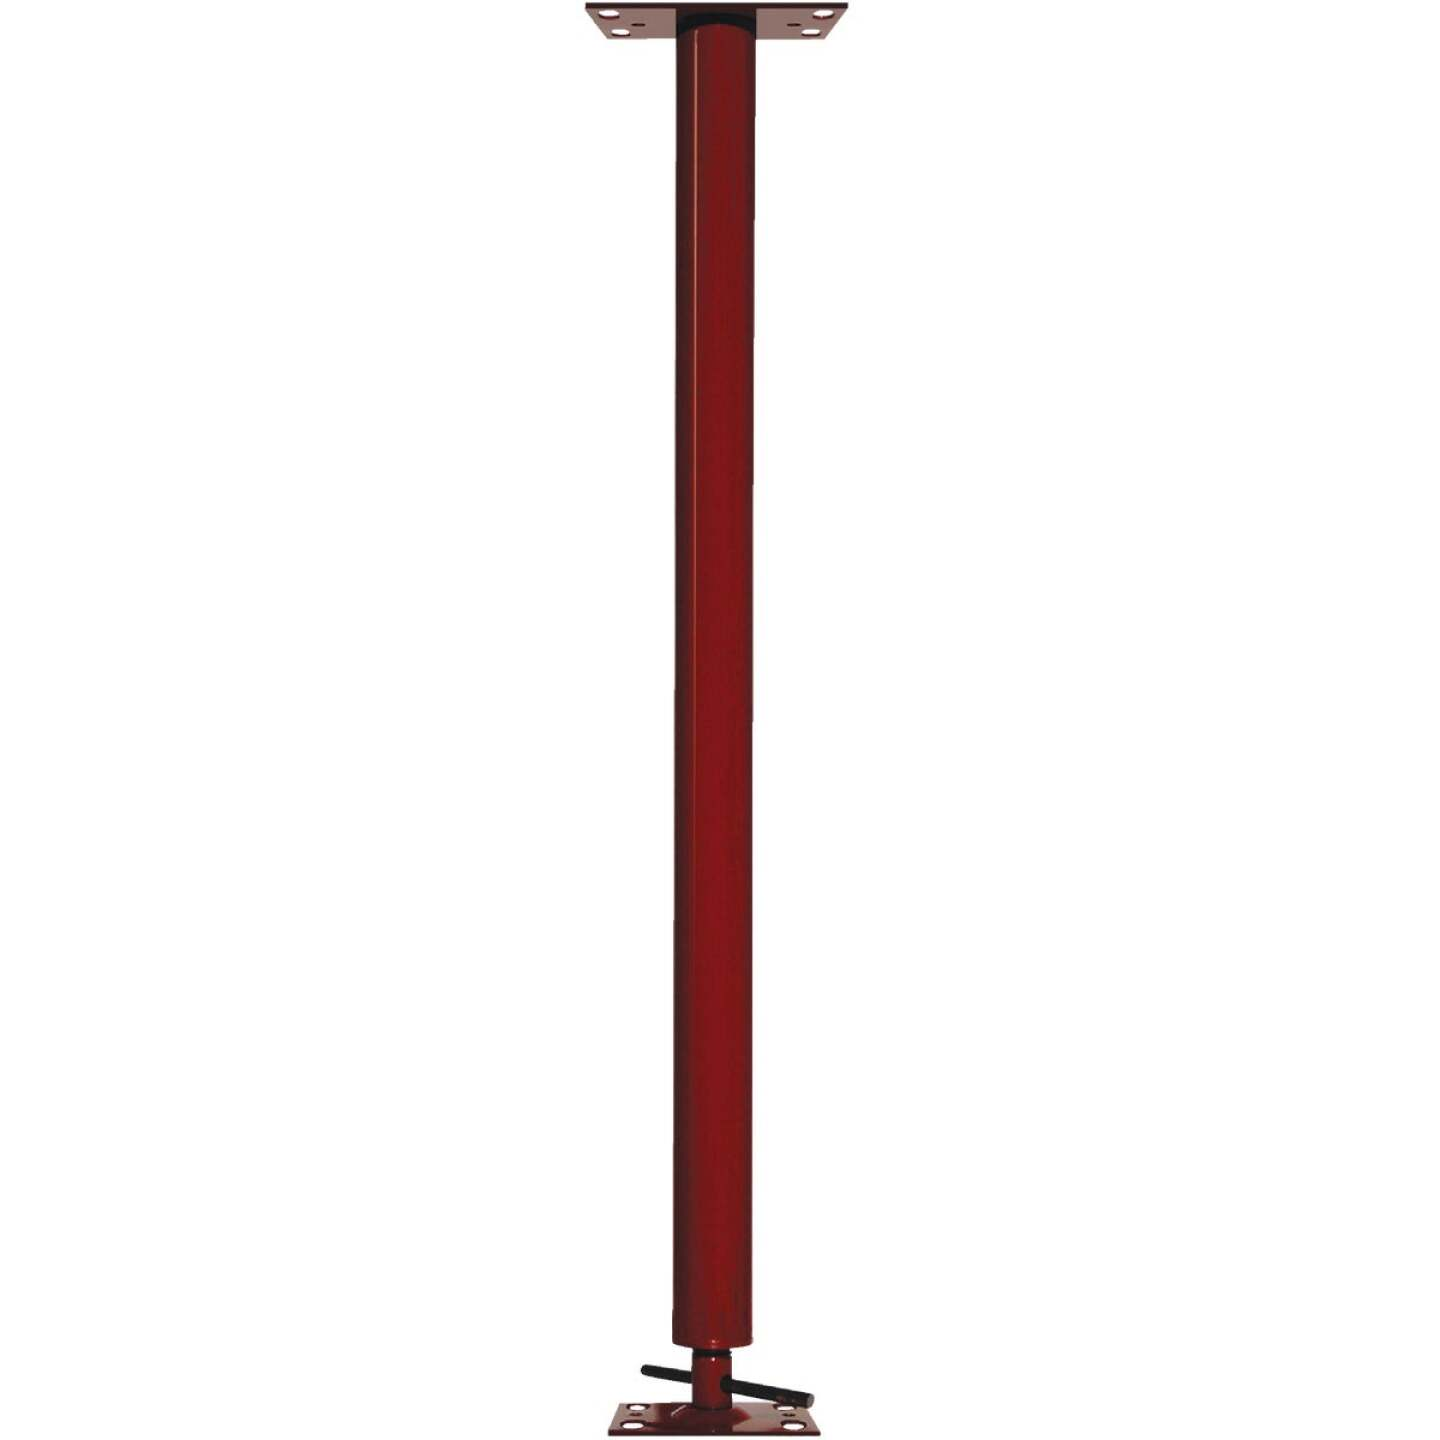 Akron 7 Ft. 9 In. to 8 Ft. 1 In. 11,500 Lb. Capacity Steel Adjustable Mono Post Image 1